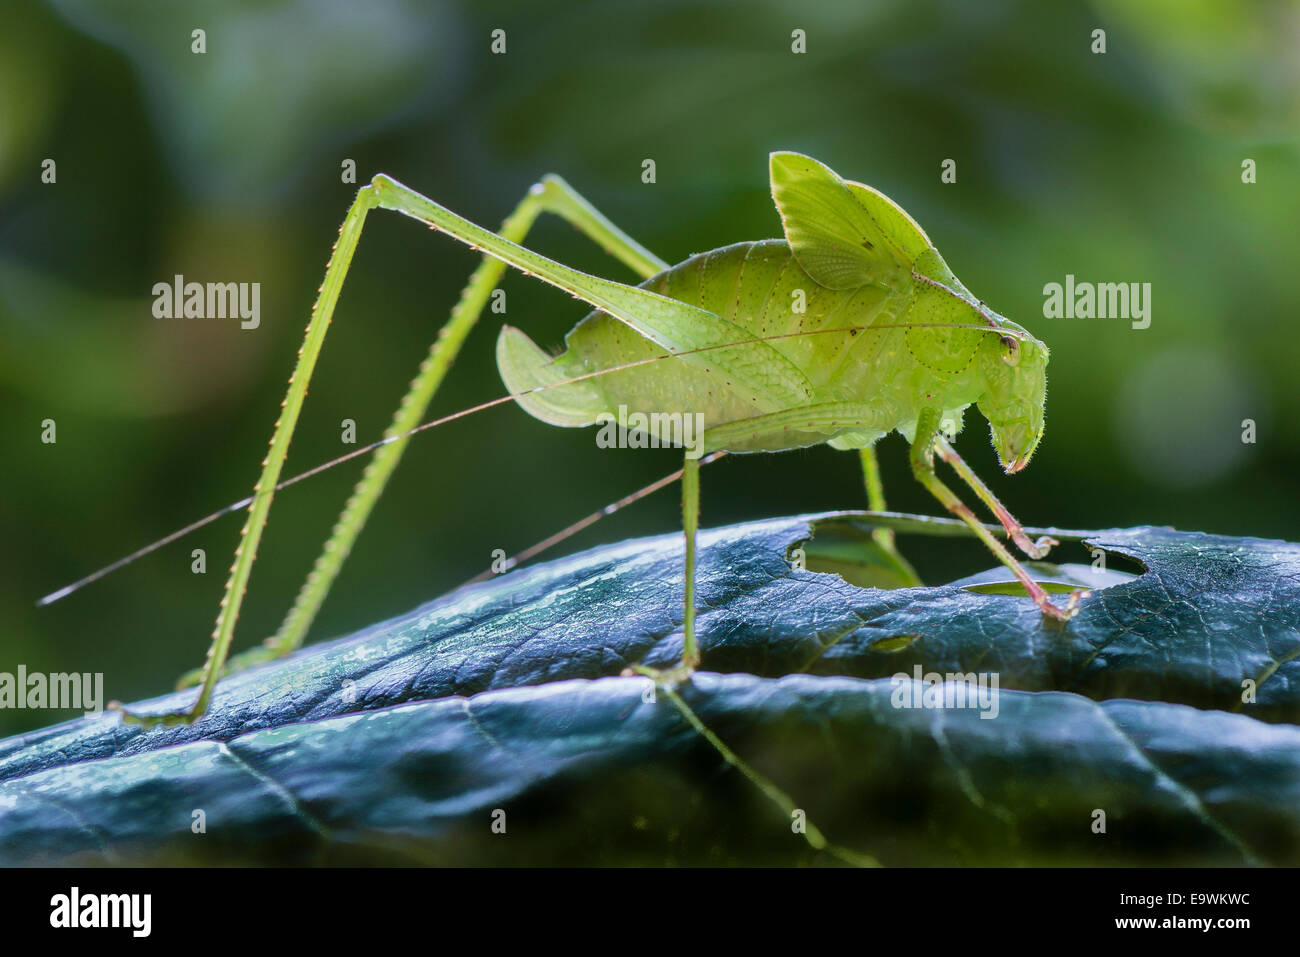 A Costa Rican Leaf Katydid on a leaf - Stock Image